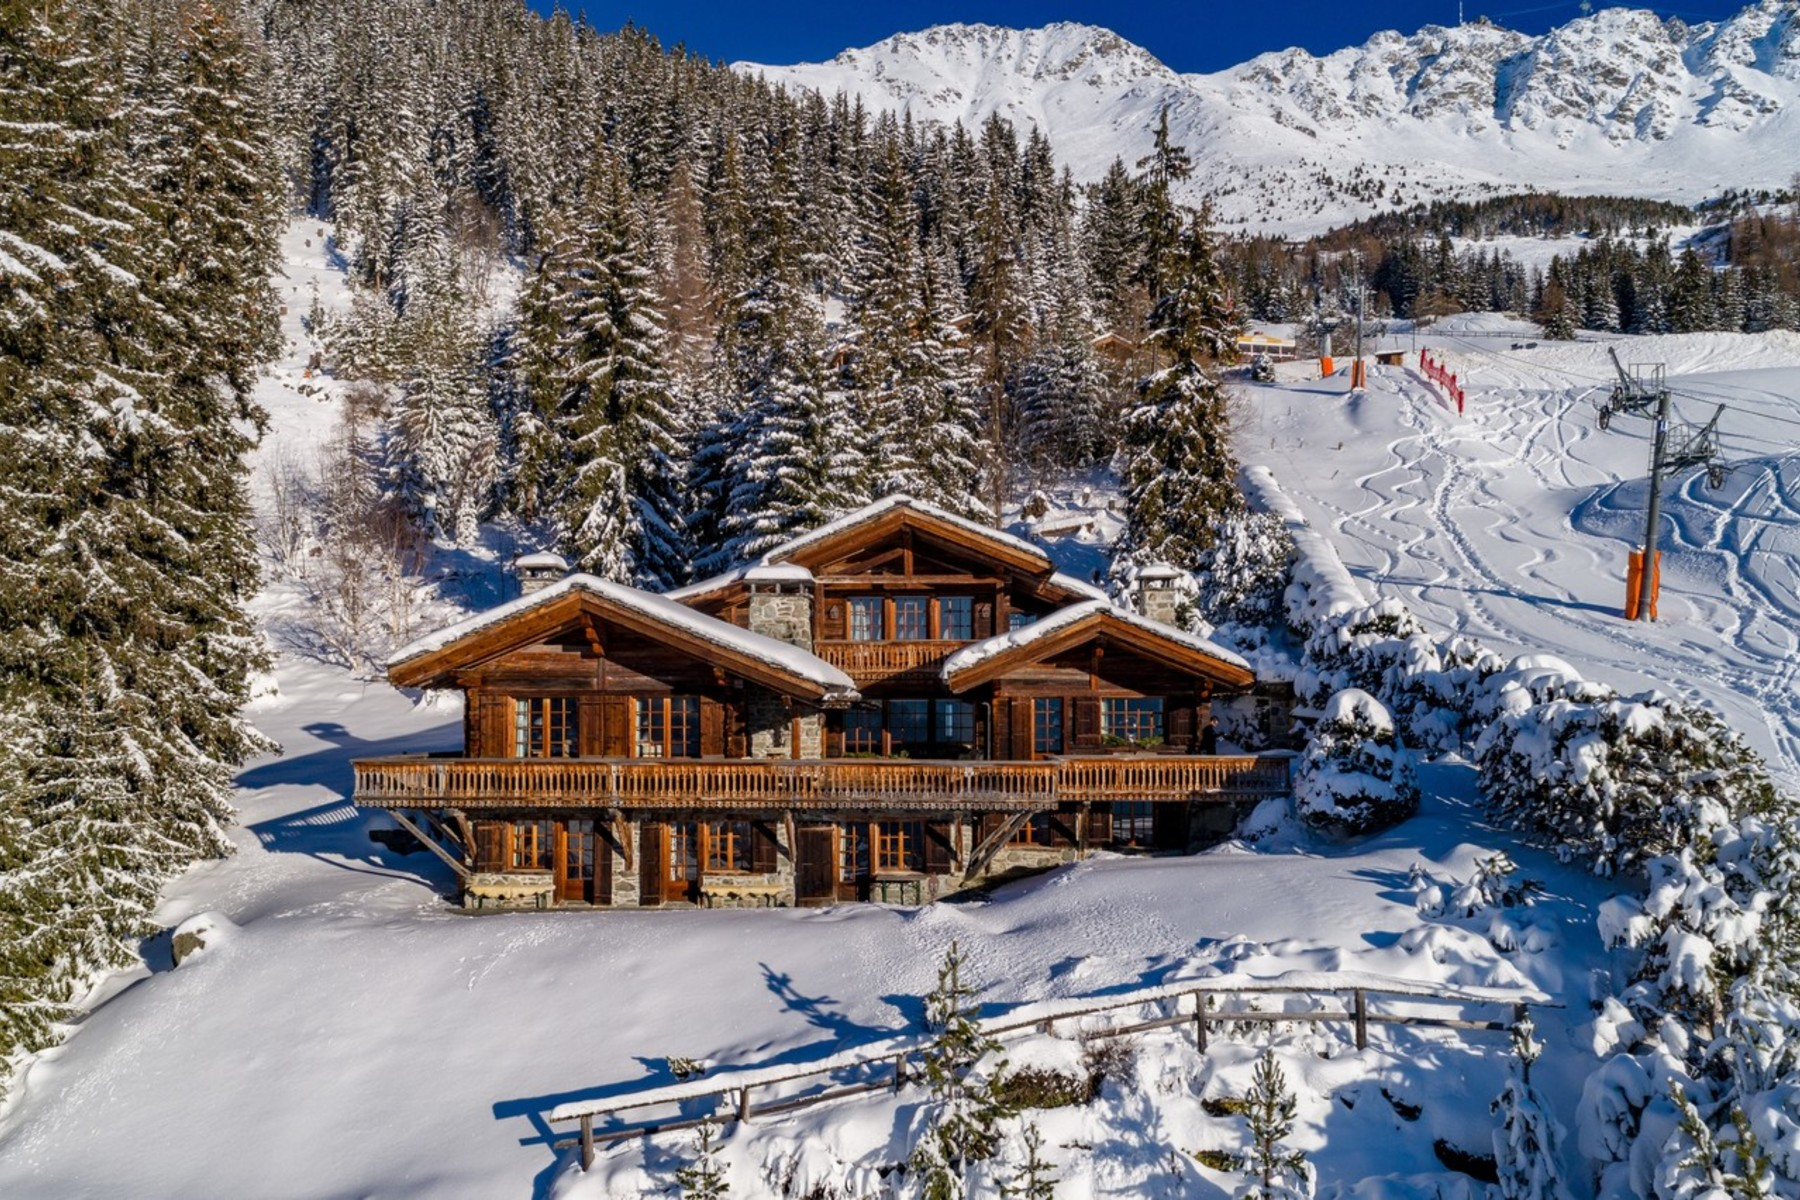 Single Family Homes for Sale at Chalet TROIS TOITS Verbier Verbier, Valais 1936 Switzerland